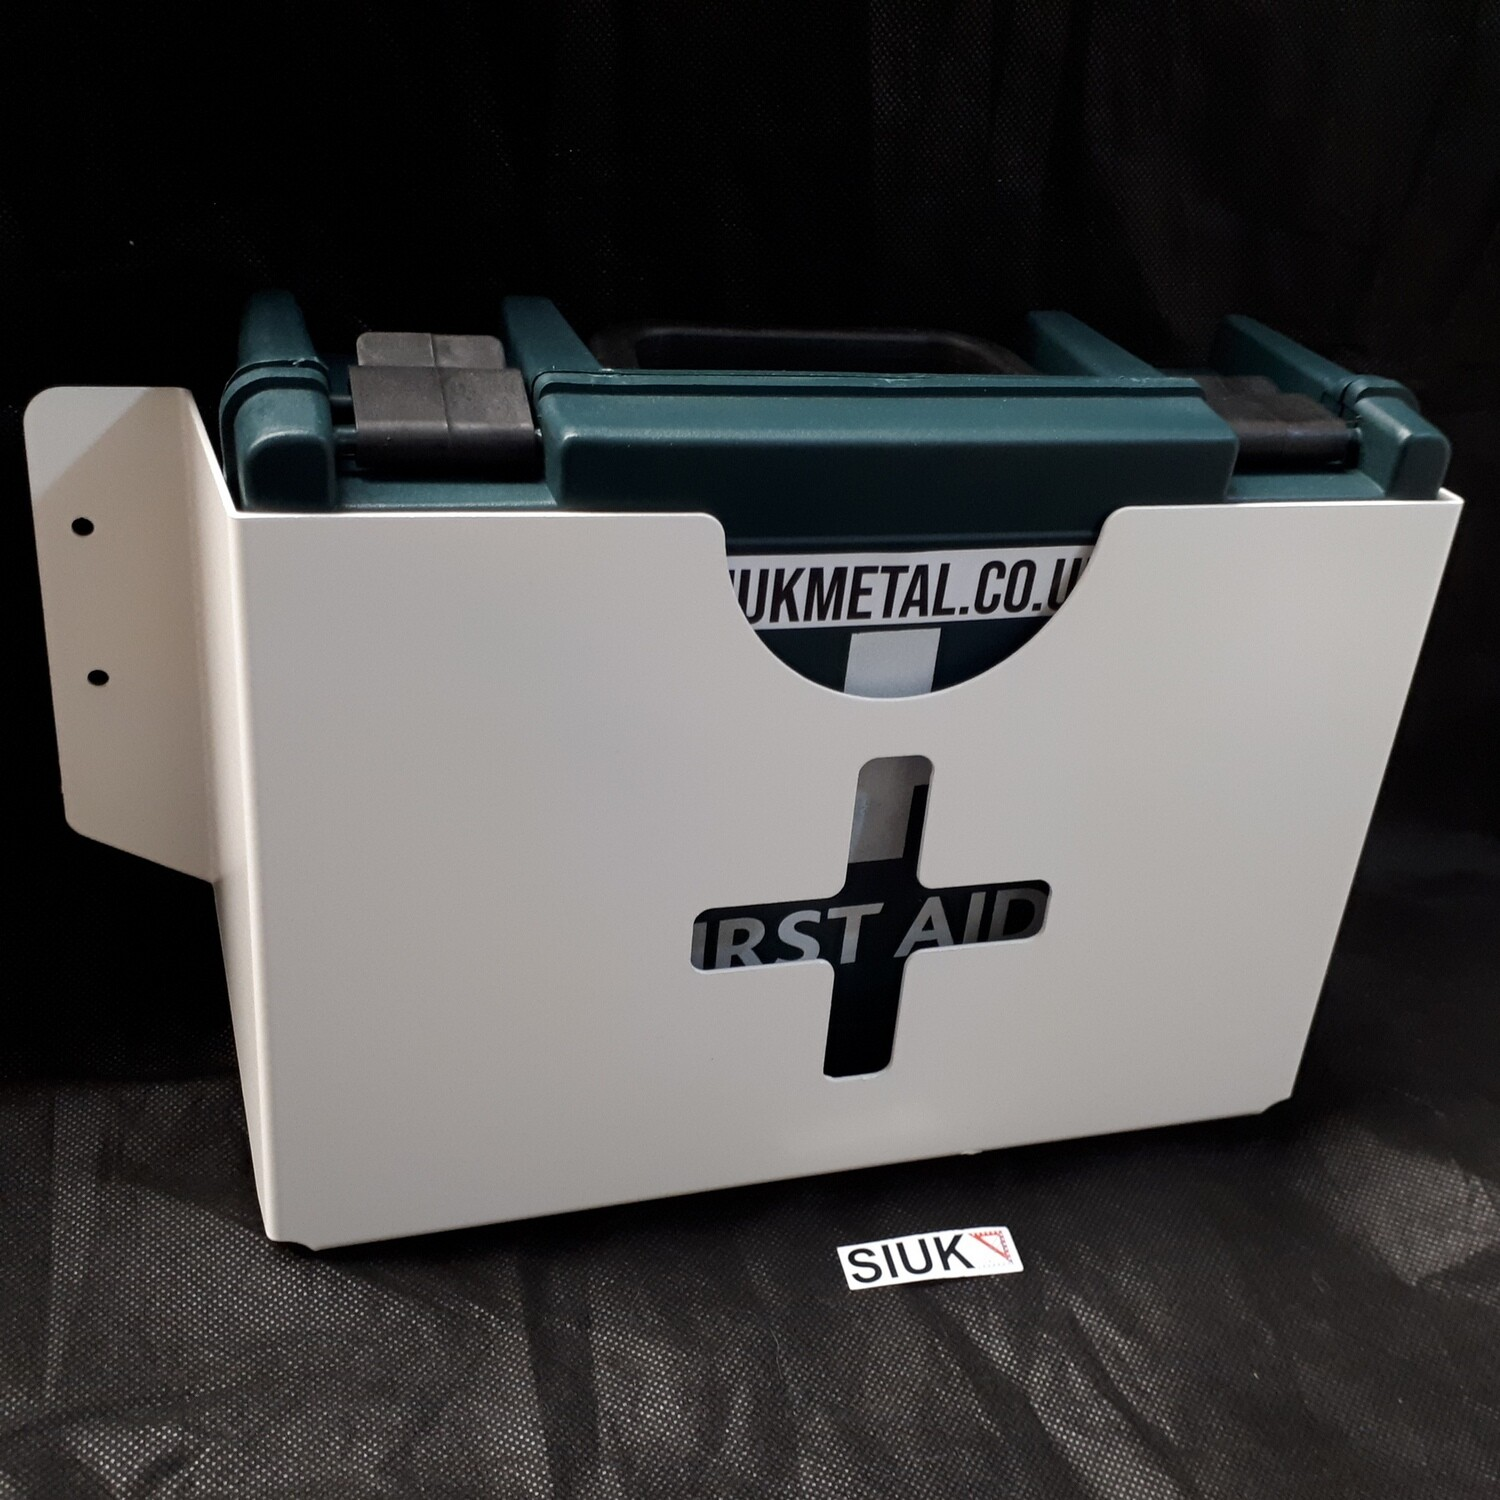 First Aid Kit & Wall Mount for Van, Workshop, Office, Retail & more